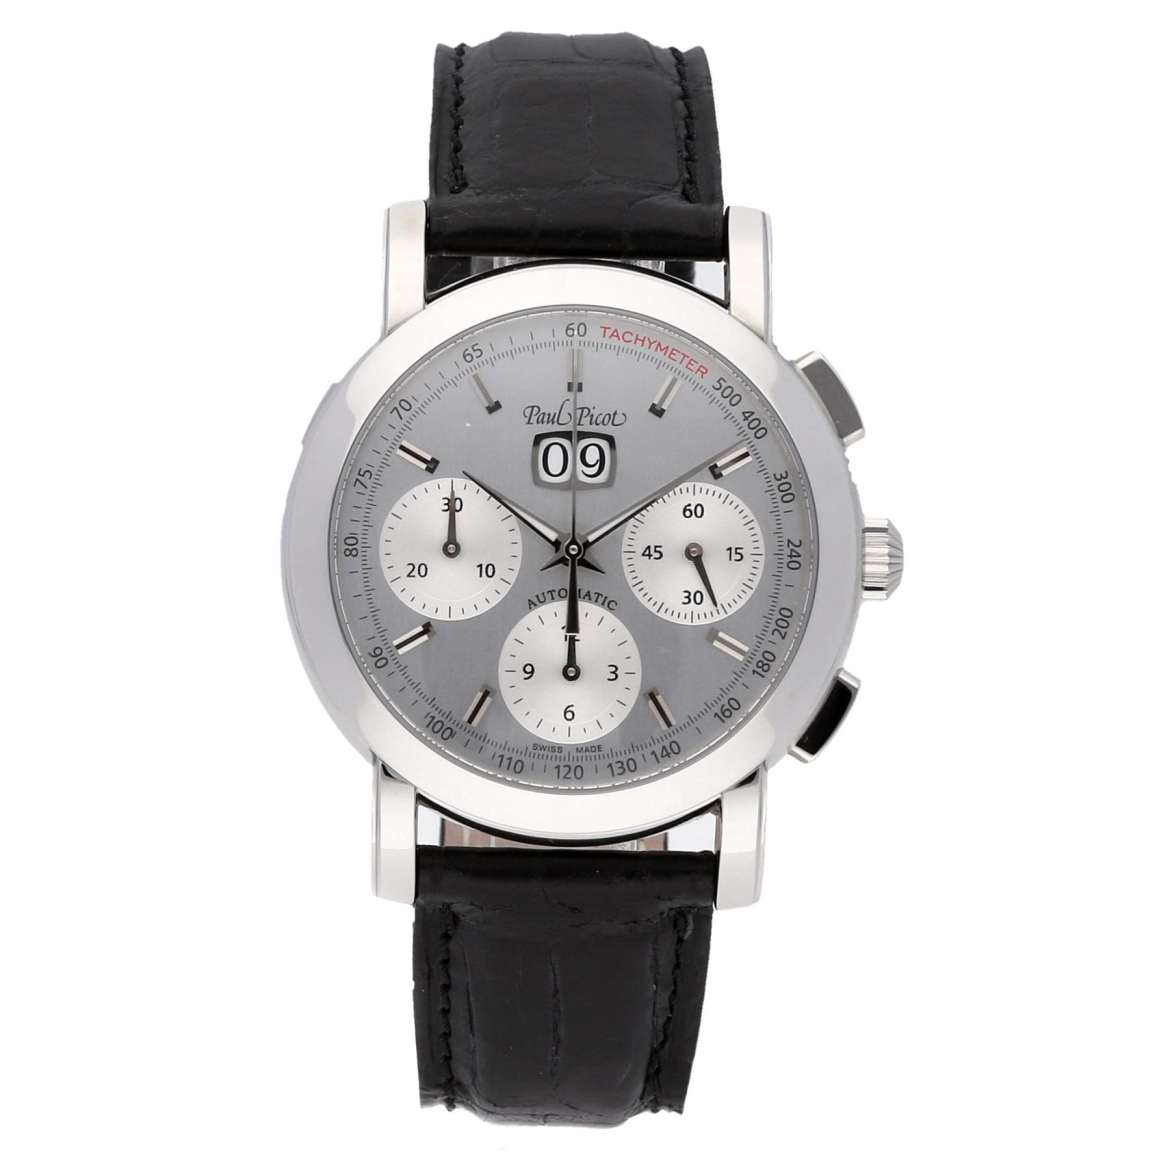 Paul Picot Watch from WatchBox